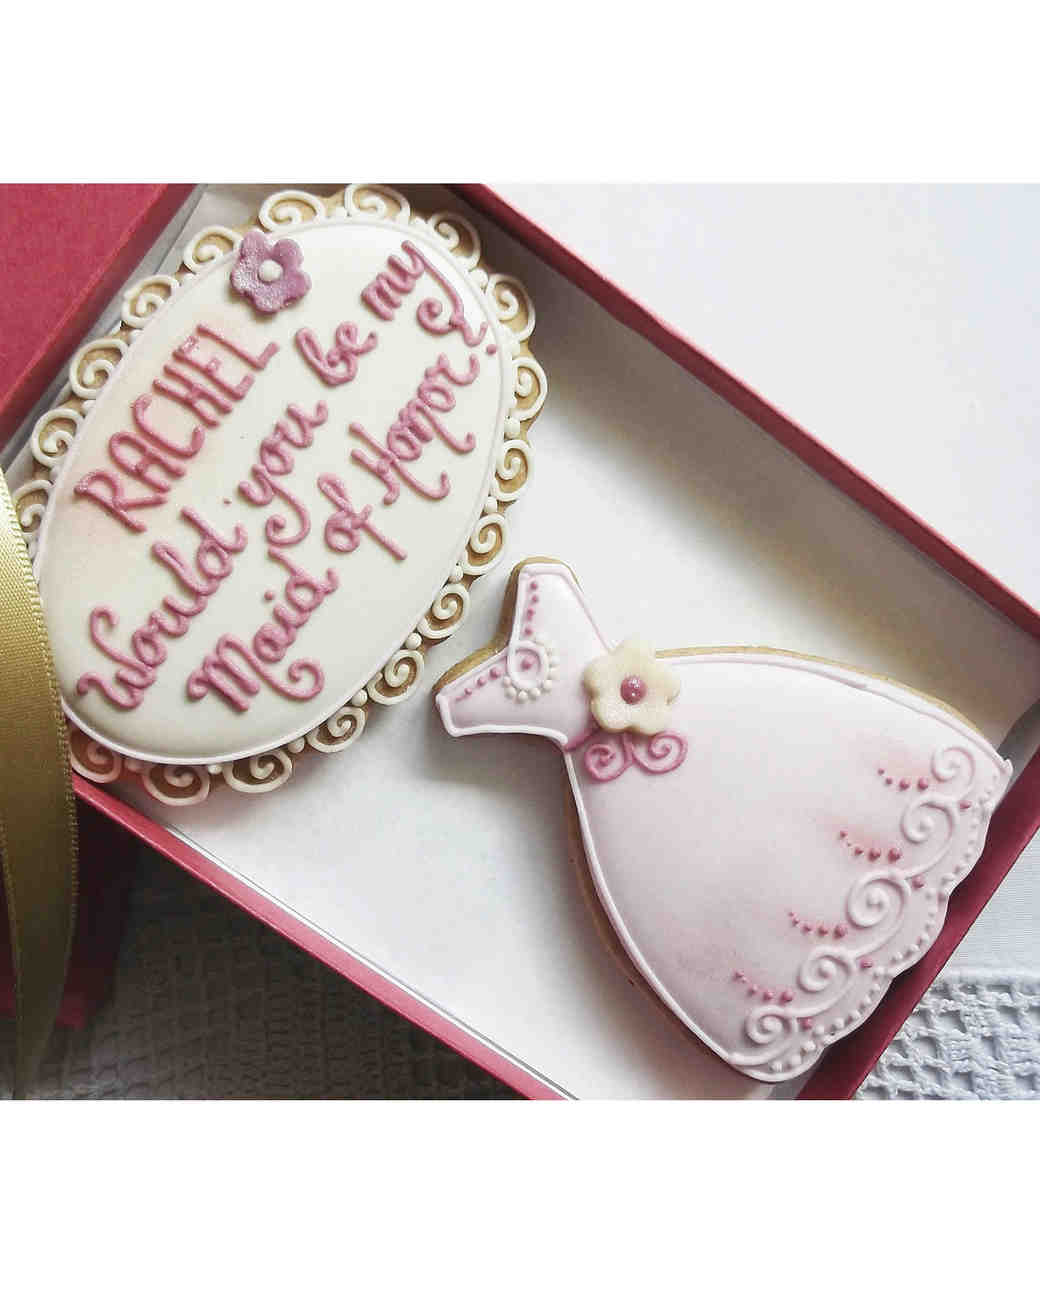 ask-your-bff-to-be-moh-custom-cookie-etsy-0316.jpg